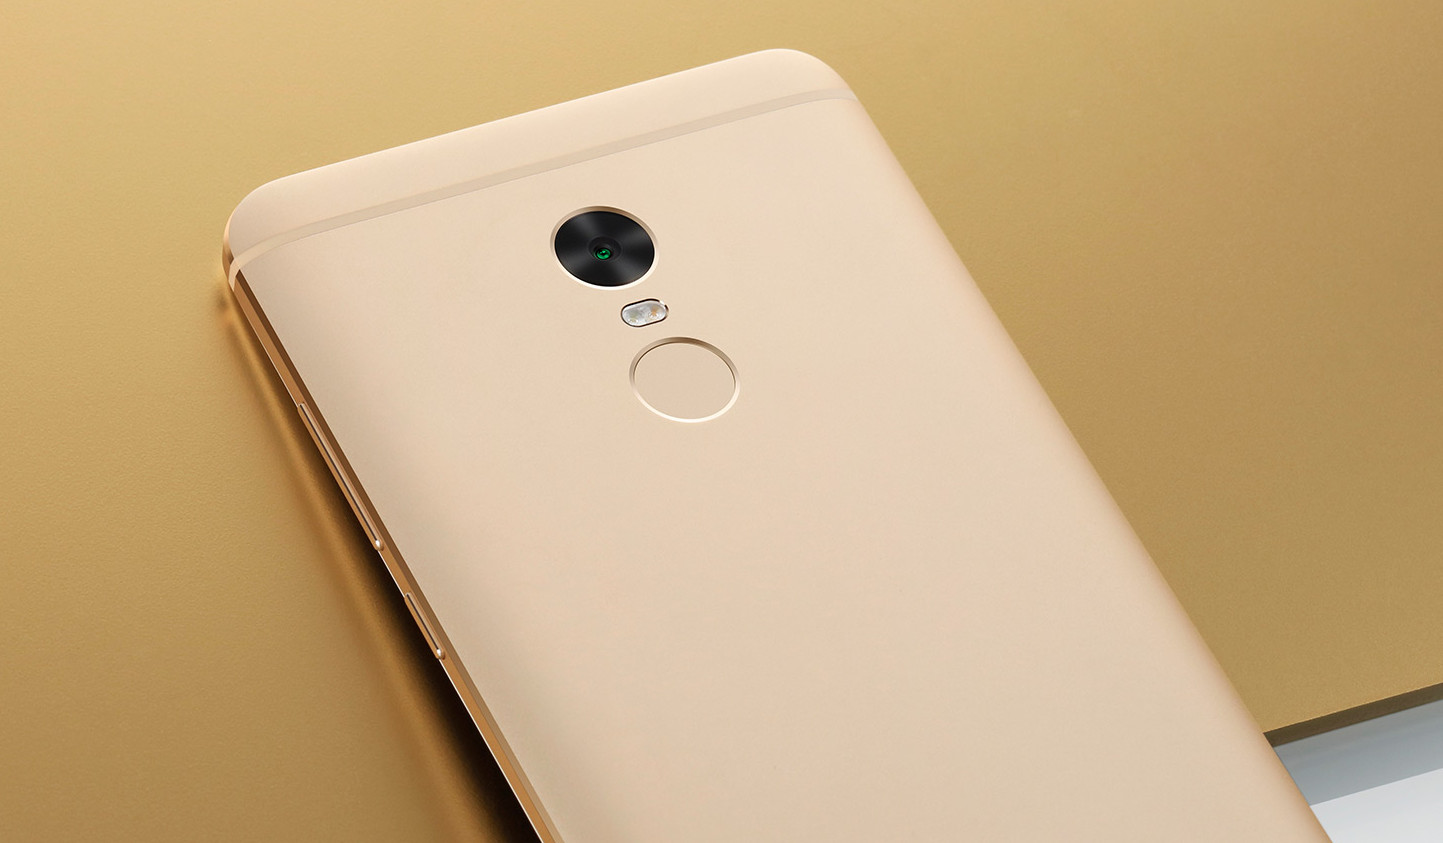 Download And Install Adb Mtp Drivers For Xiaomi Redmi Note: How To Install Cofface TWRP In Xiaomi Redmi Note 4